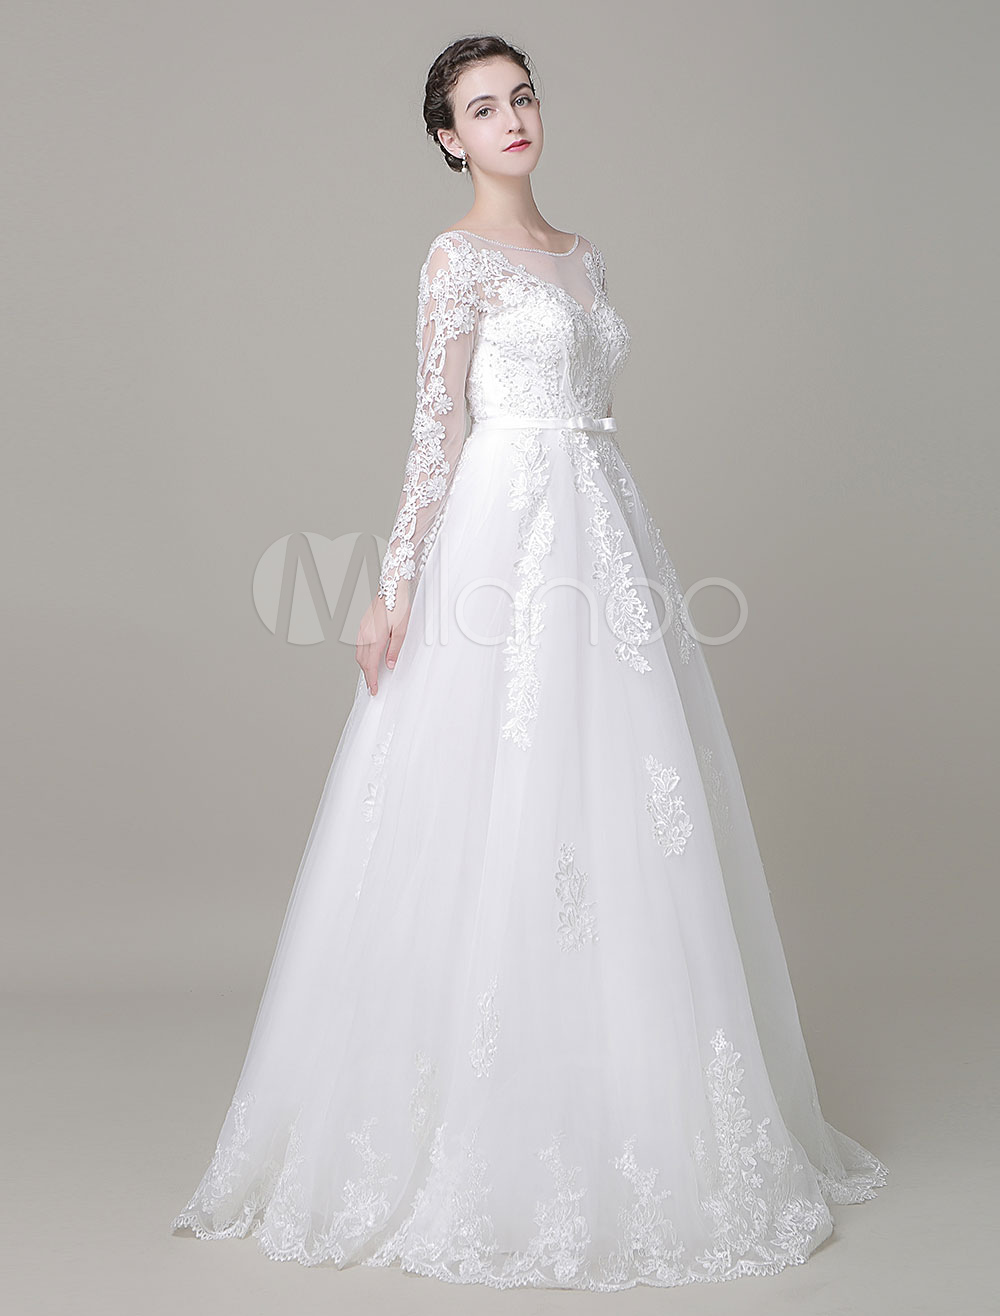 A-Line Wedding Dress Floor Length Long Sleeves Lace Beading Bridal Dress